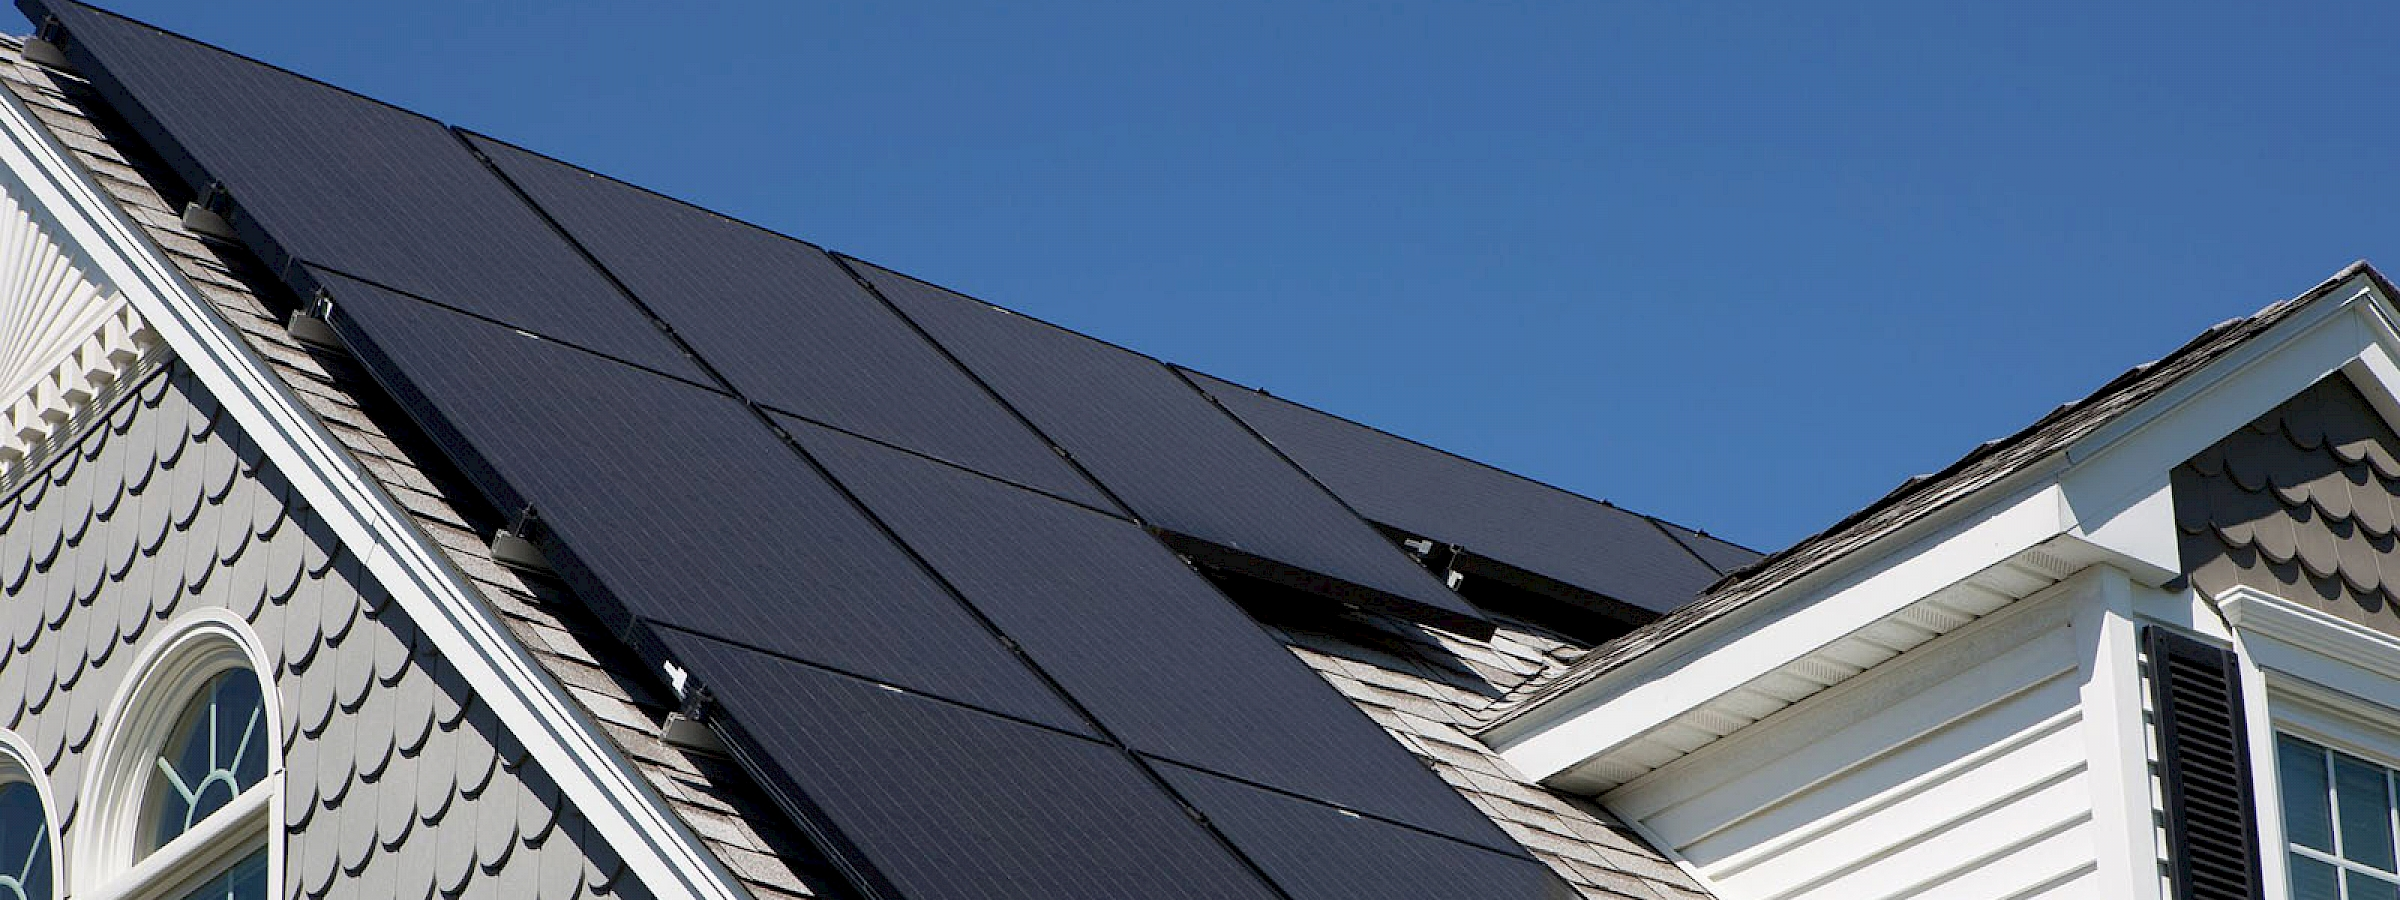 Boston Solar and Sandri Energy Partner to Offer Solar to Customers